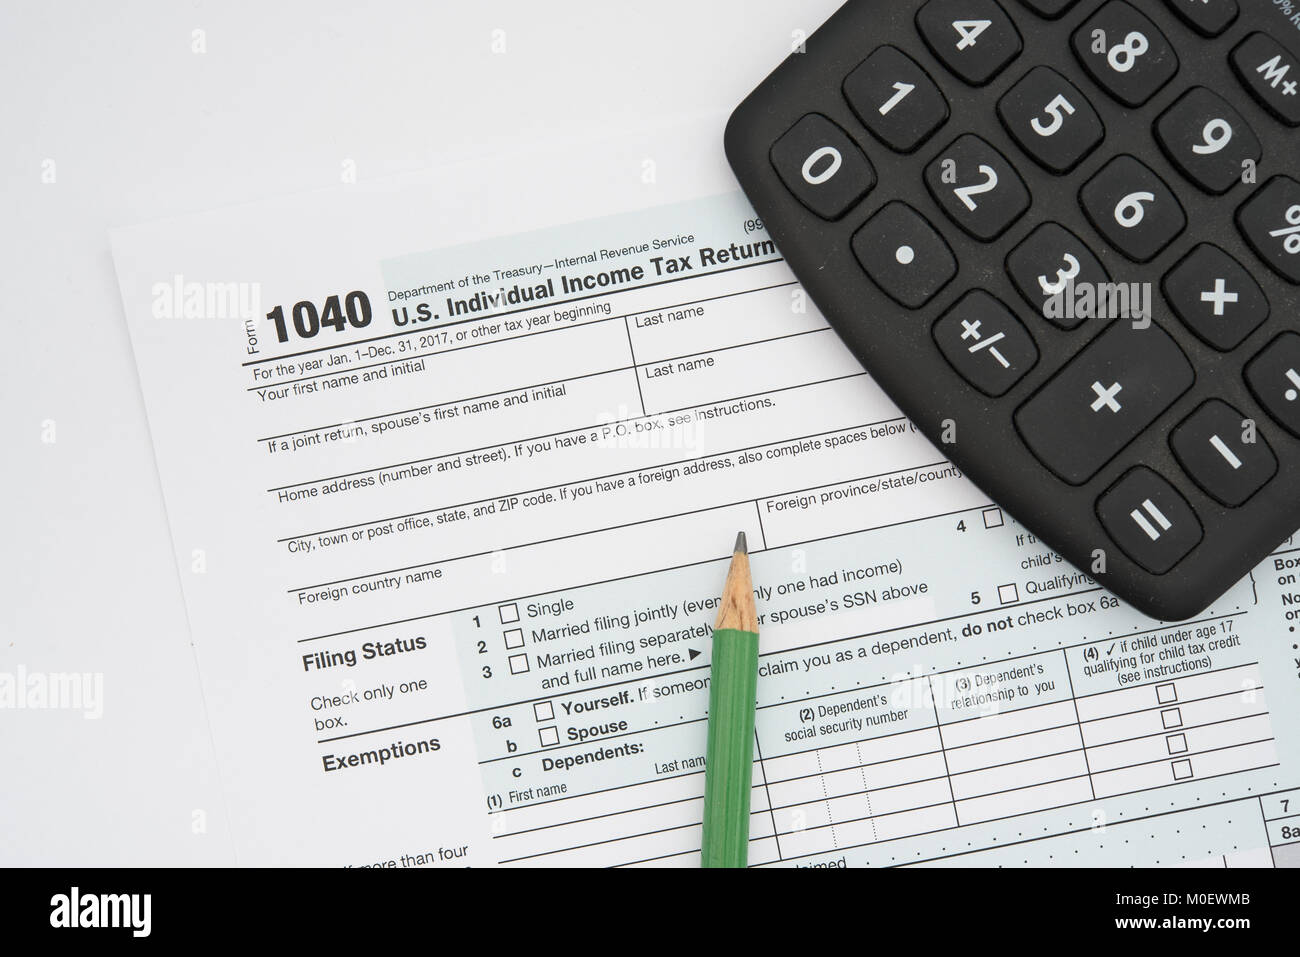 Us Federal Income Tax Form 1040 For Individuals With A Pencil And A